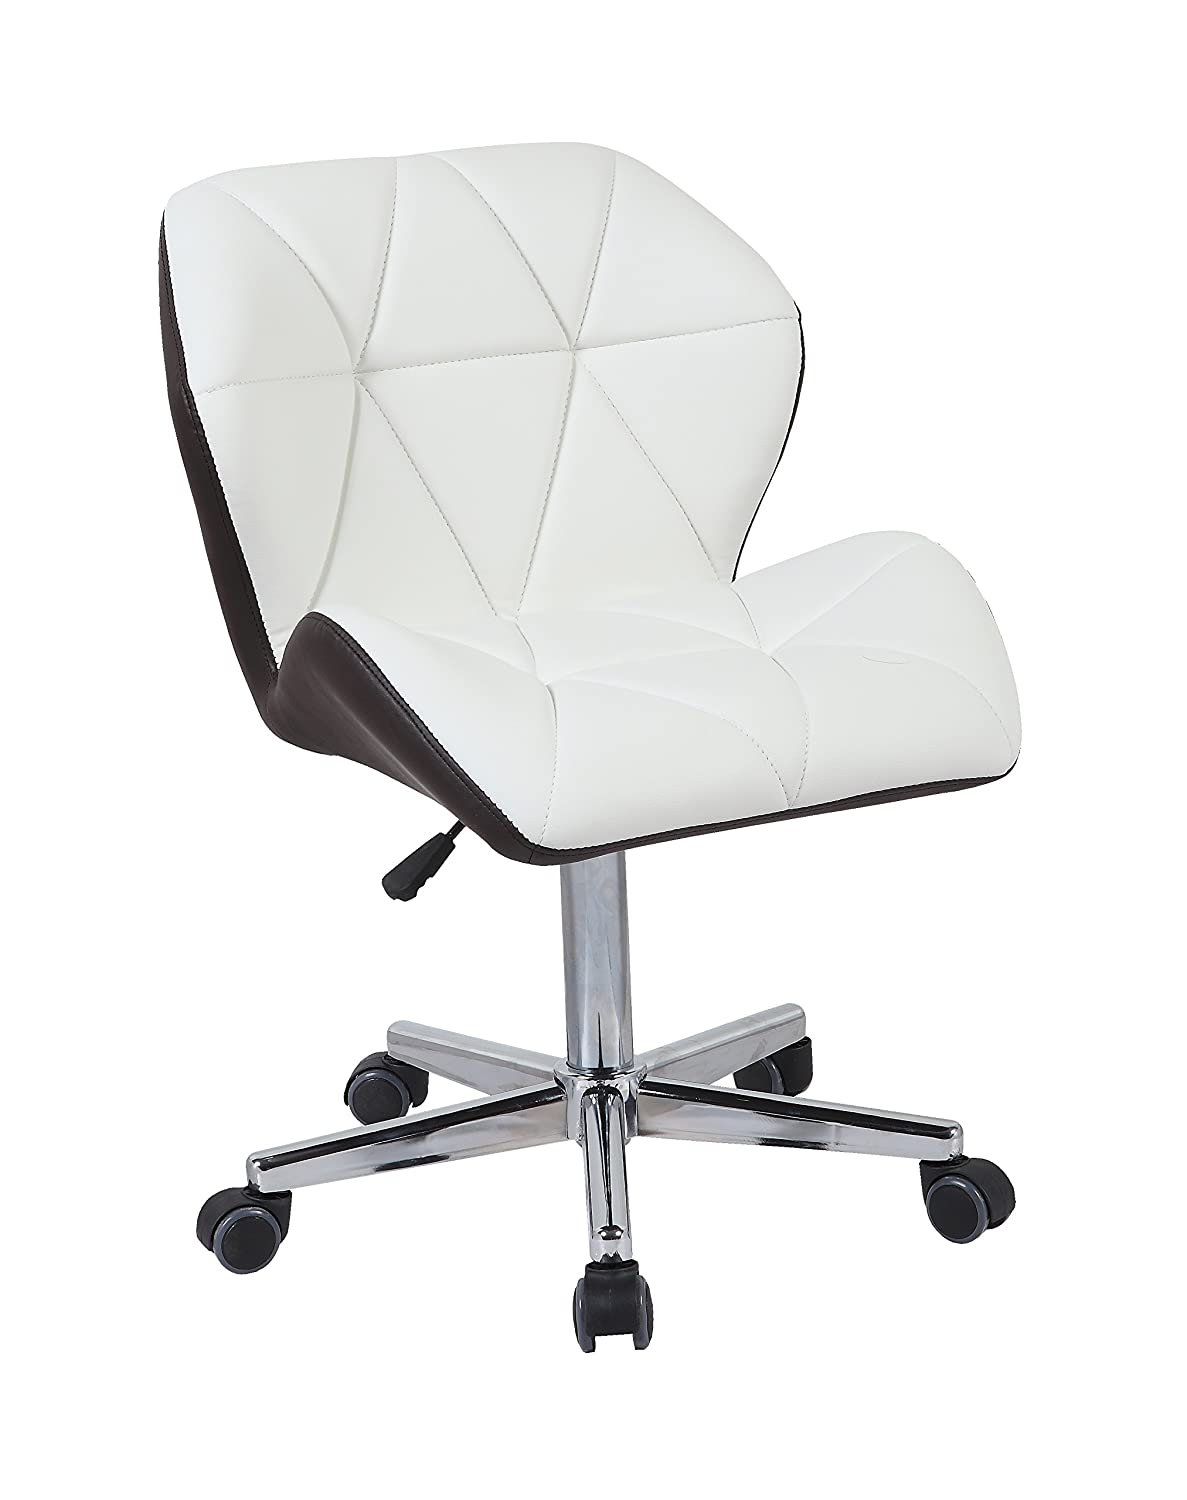 Hnnhome modern uranus padded swivel leather computer desk office chair mixed color white grey amazon co uk kitchen home